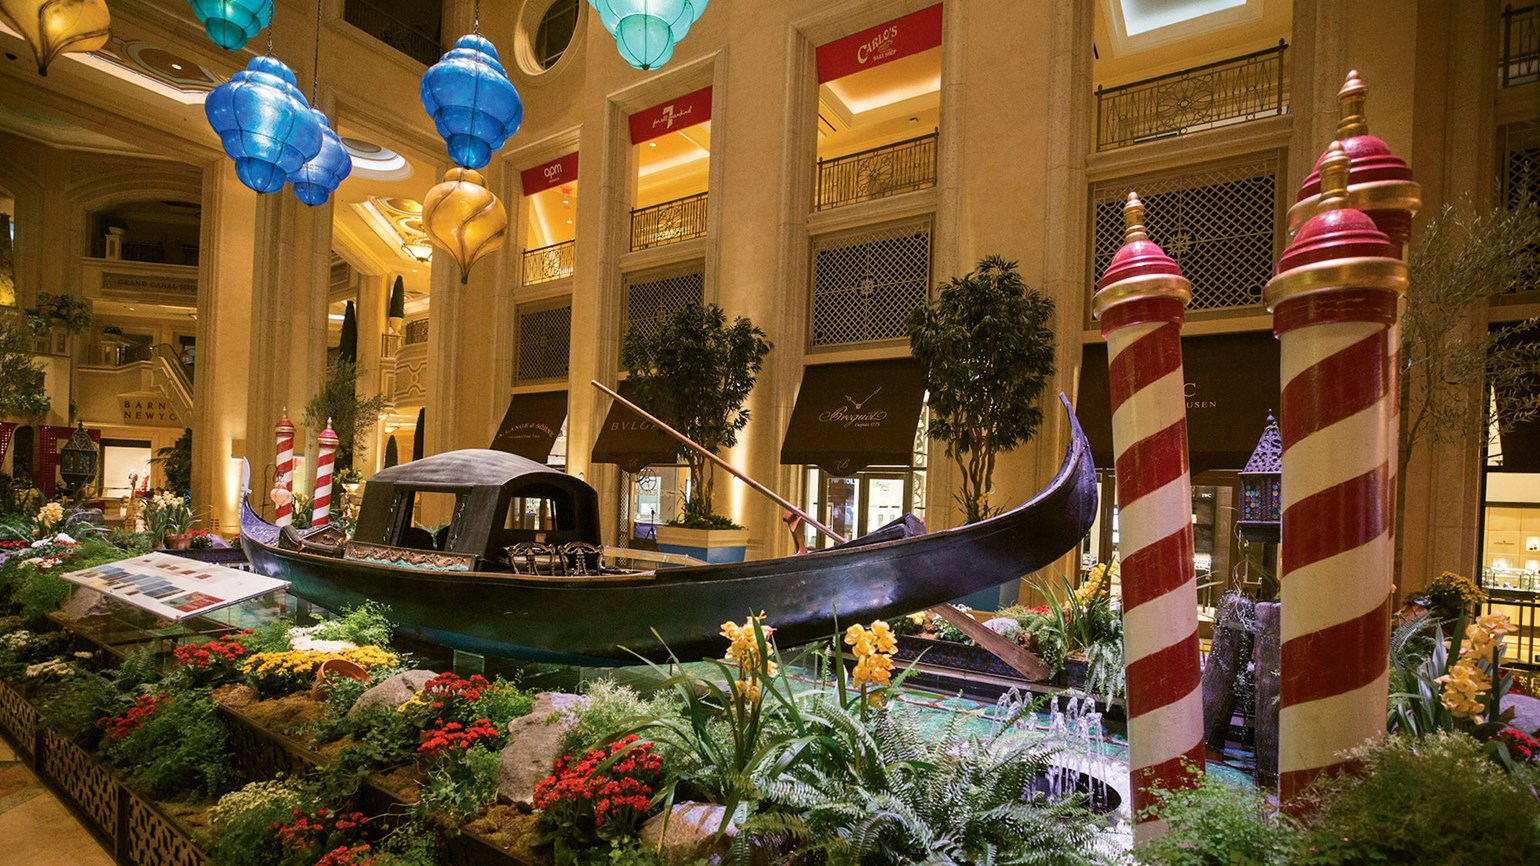 Antique gondola docked in place of honor at the Venetian